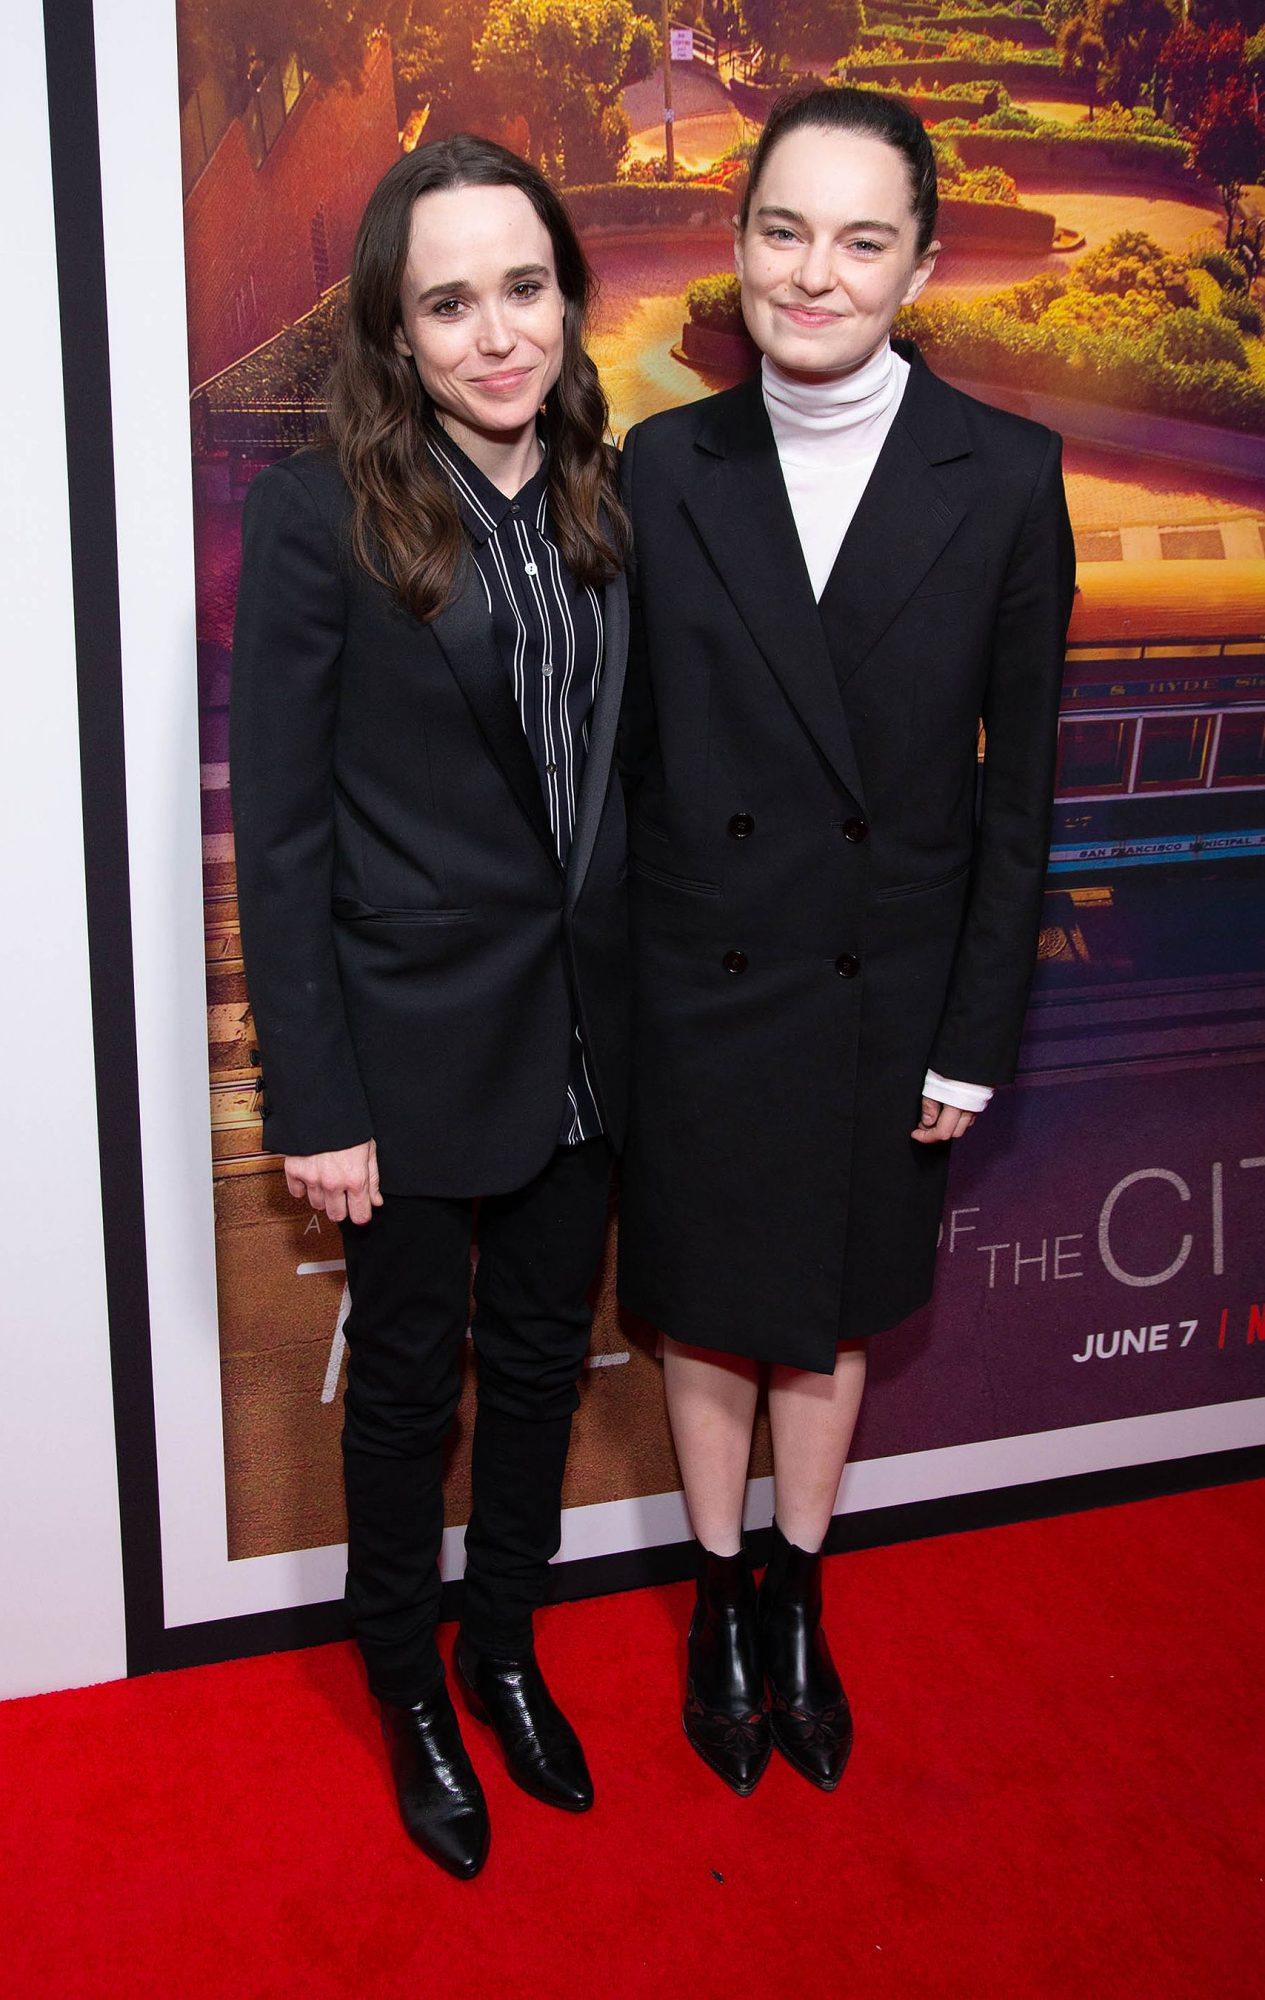 Ellen Page and Emma Portner